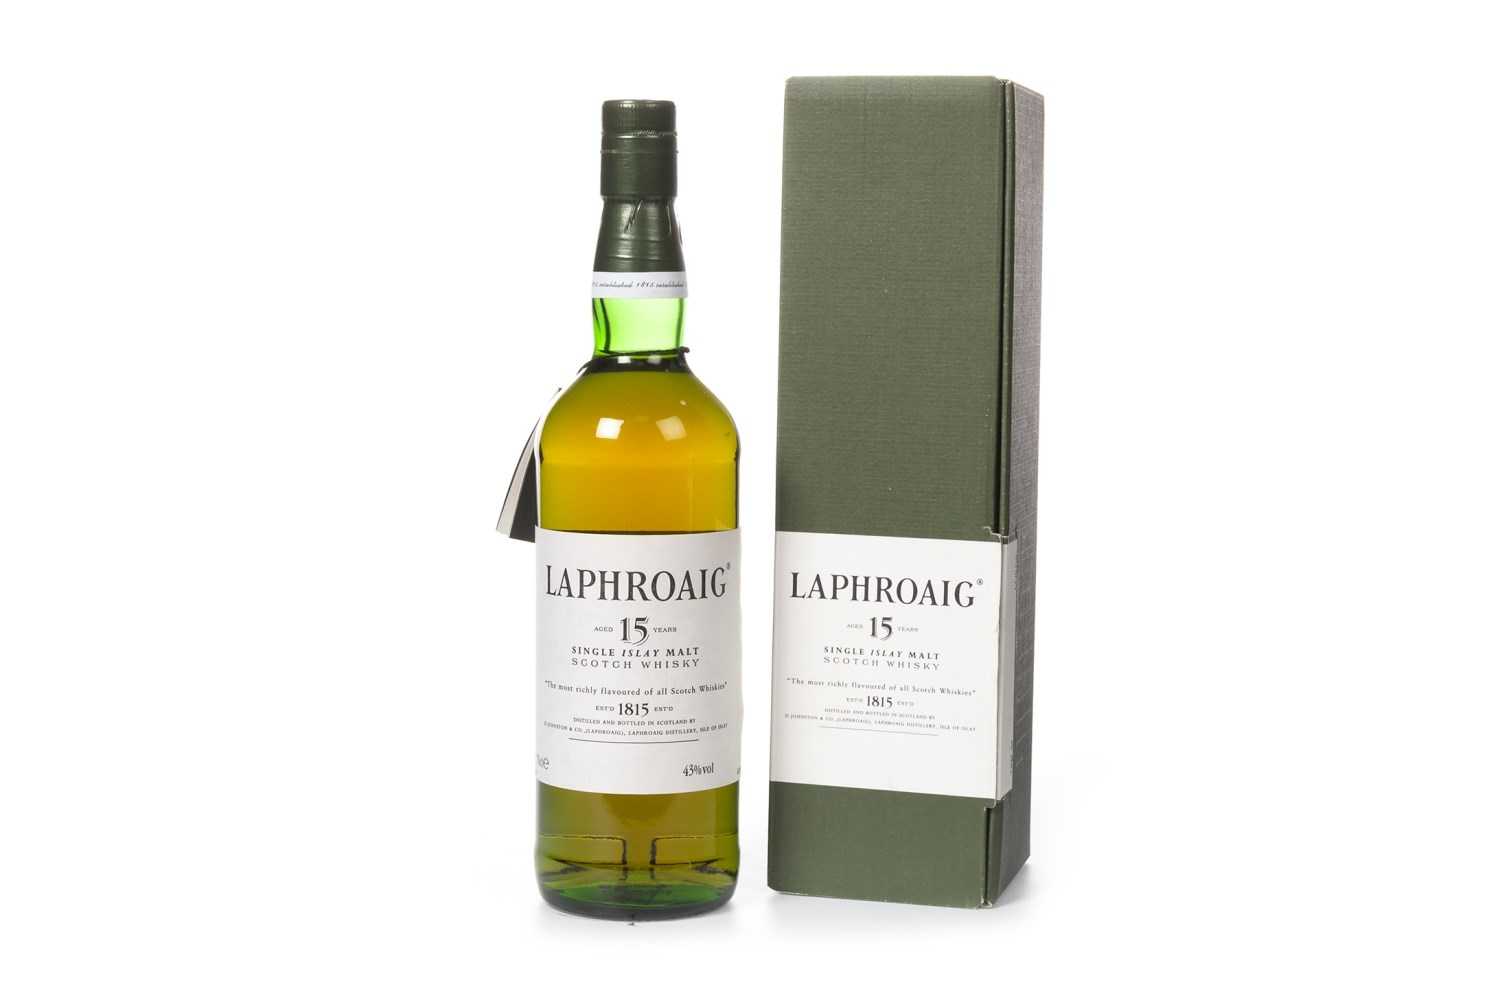 Lot 1026 - LAPHROAIG AGED 15 YEARS PRE-ROYAL WARRANT